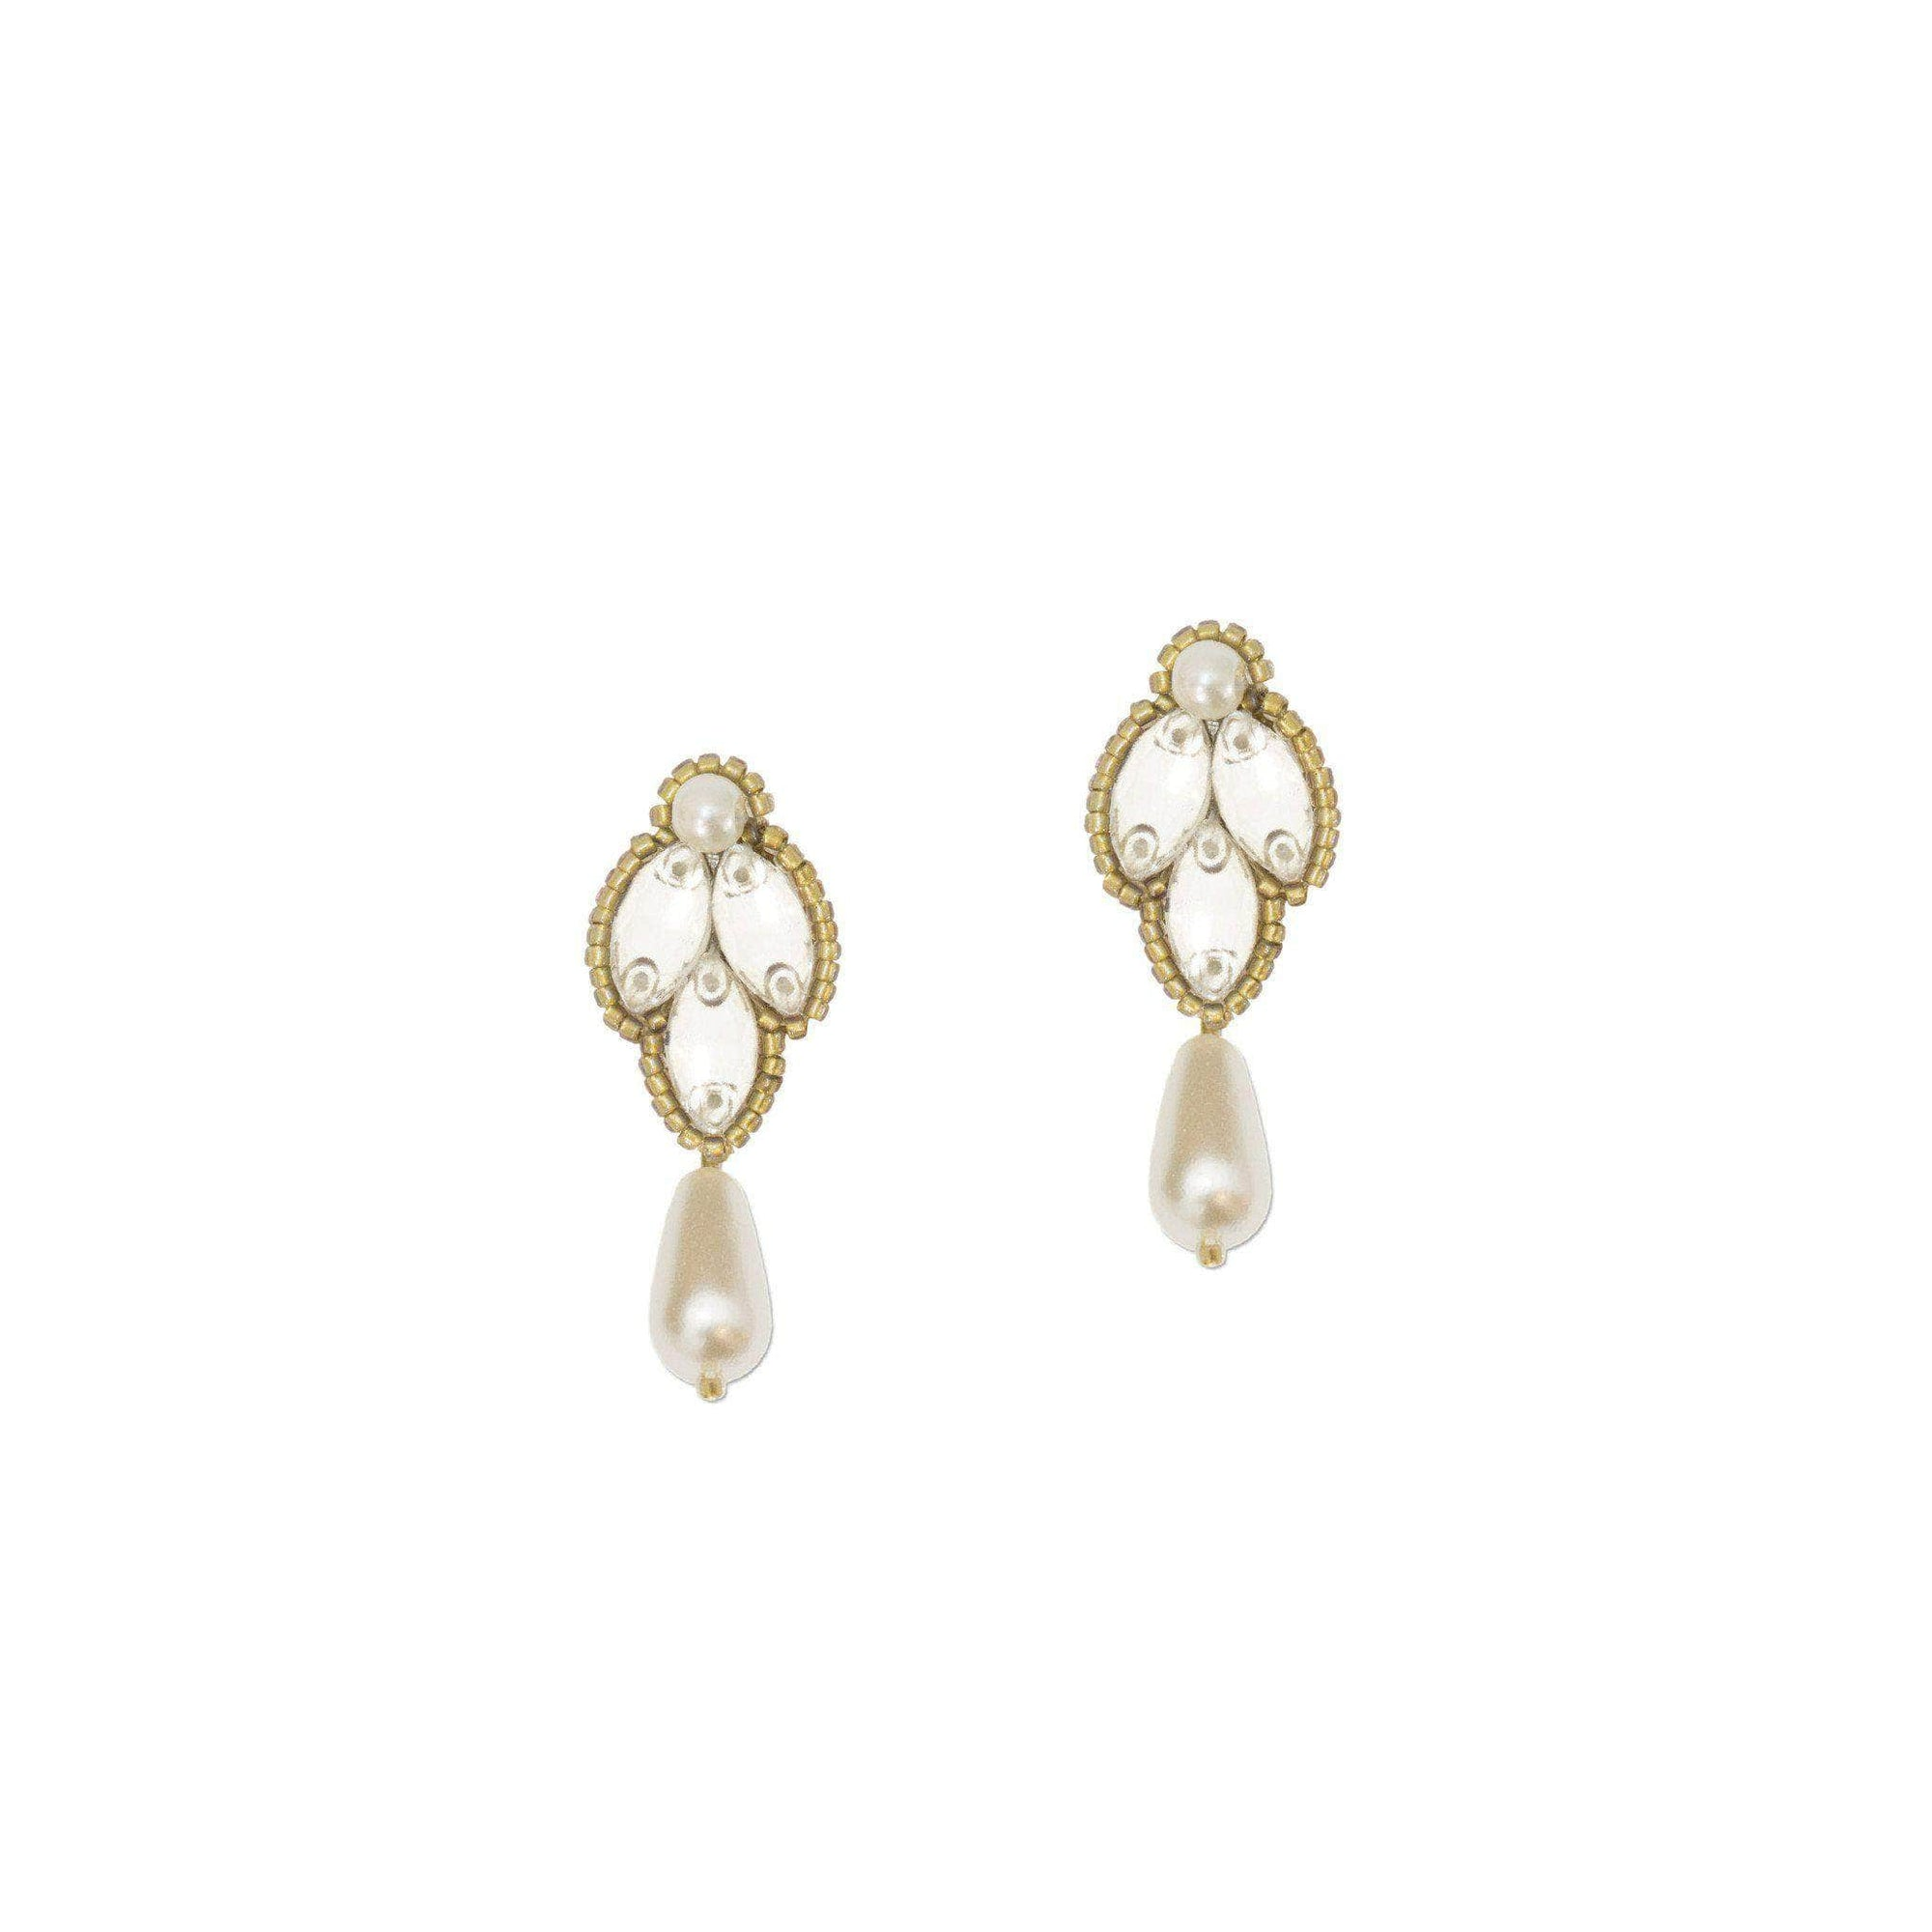 Wedding Earring gold Wedding drop earrings gold, pearl & crystal - 'Clem'